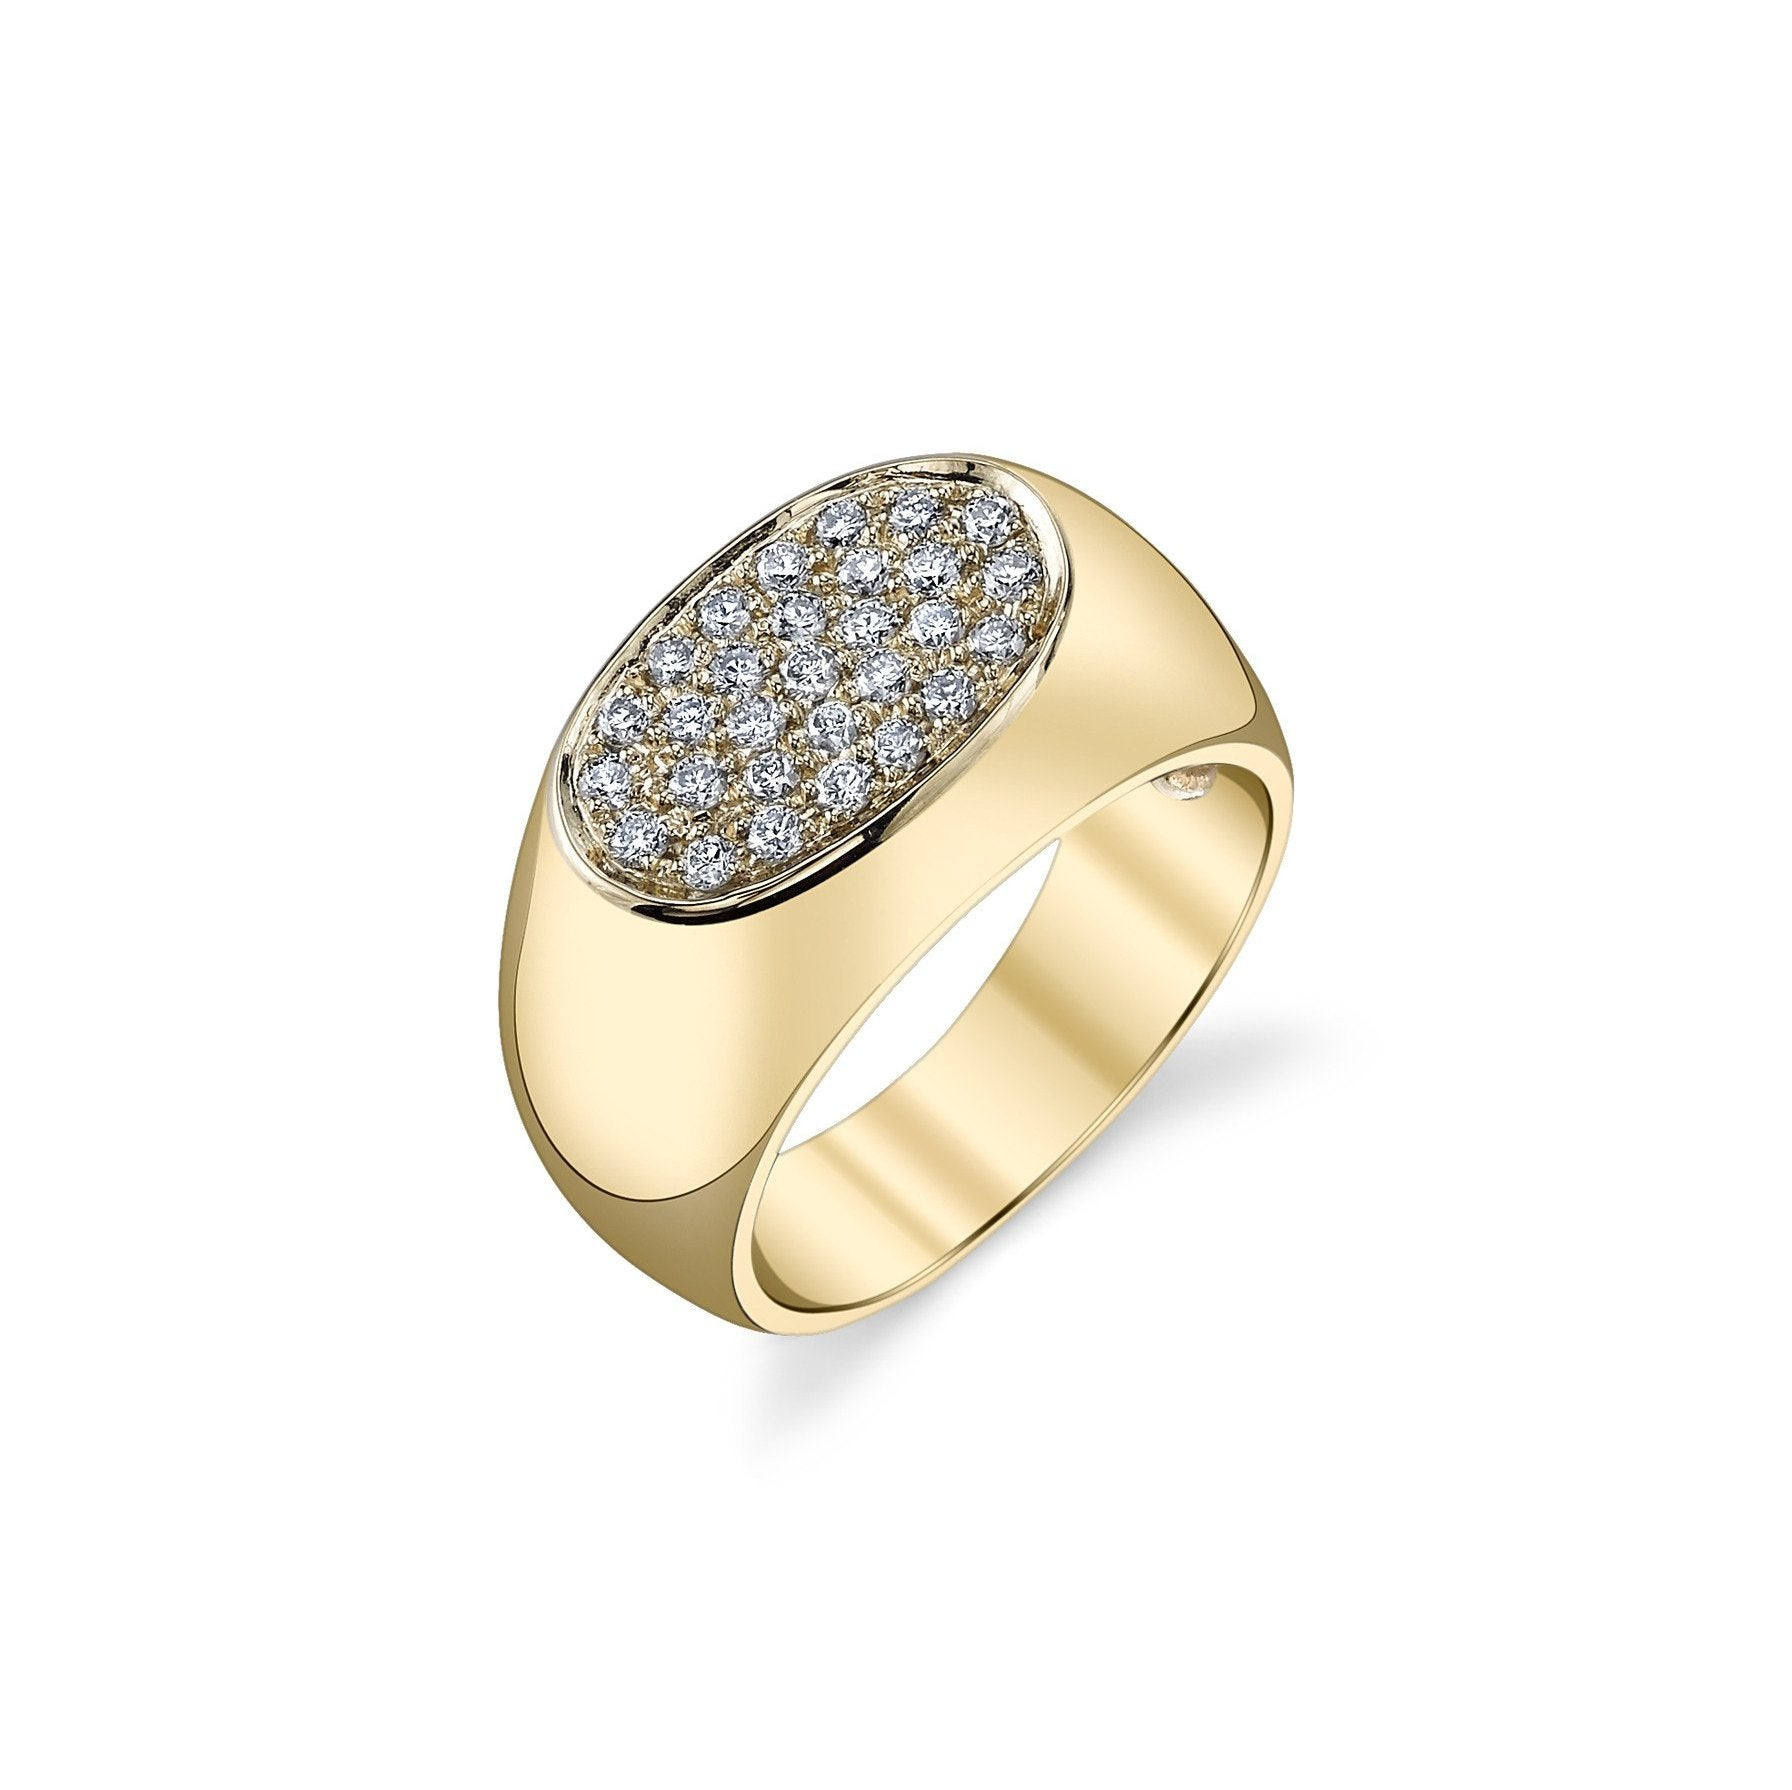 Signet Ring With White Pavé Diamonds - Gabriela Artigas